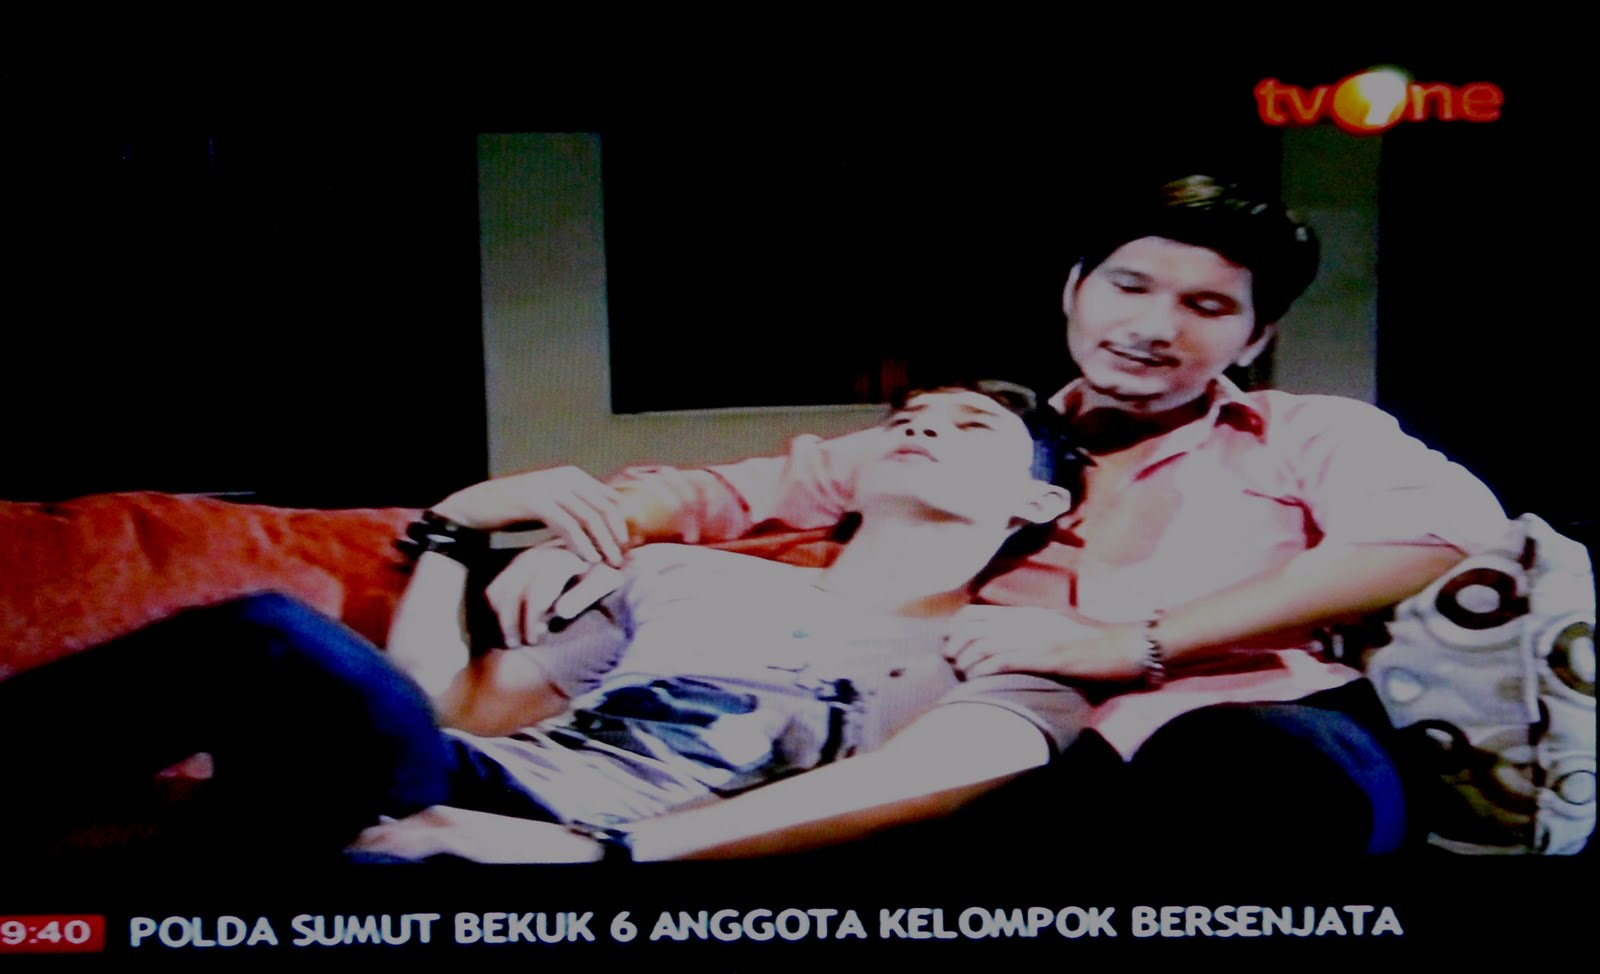 tv one tiap minggu 21 00 wib foto notenggakpenting blogspot